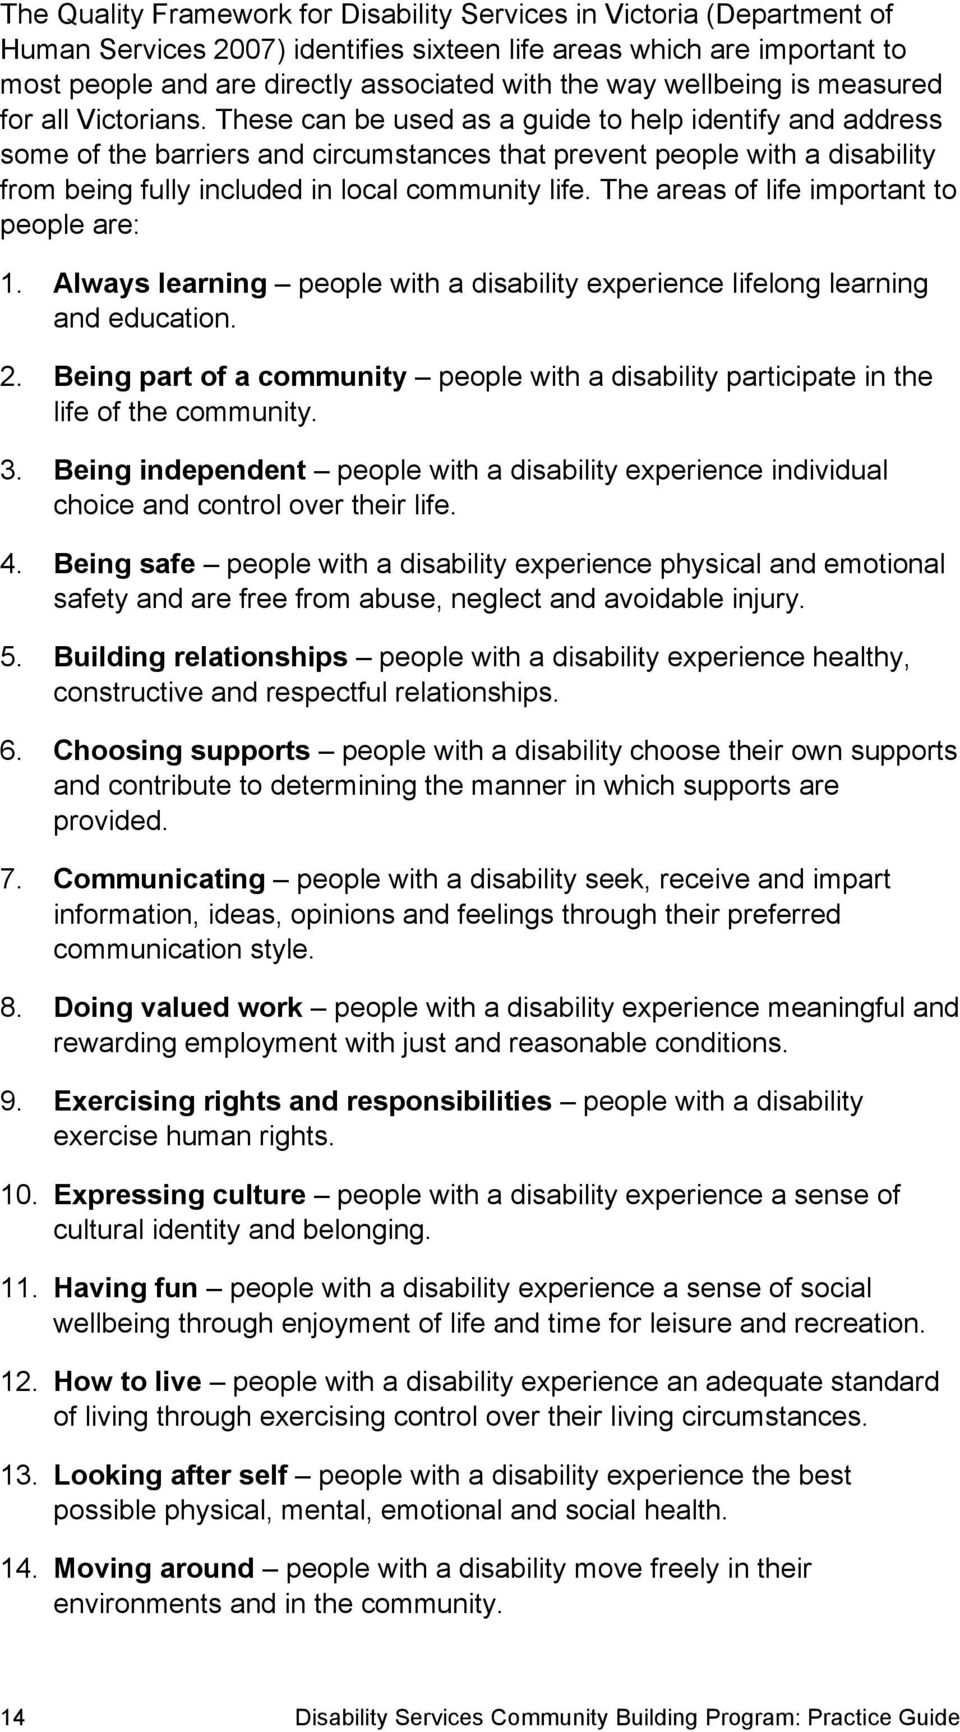 These can be used as a guide to help identify and address some of the barriers and circumstances that prevent people with a disability from being fully included in local community life.